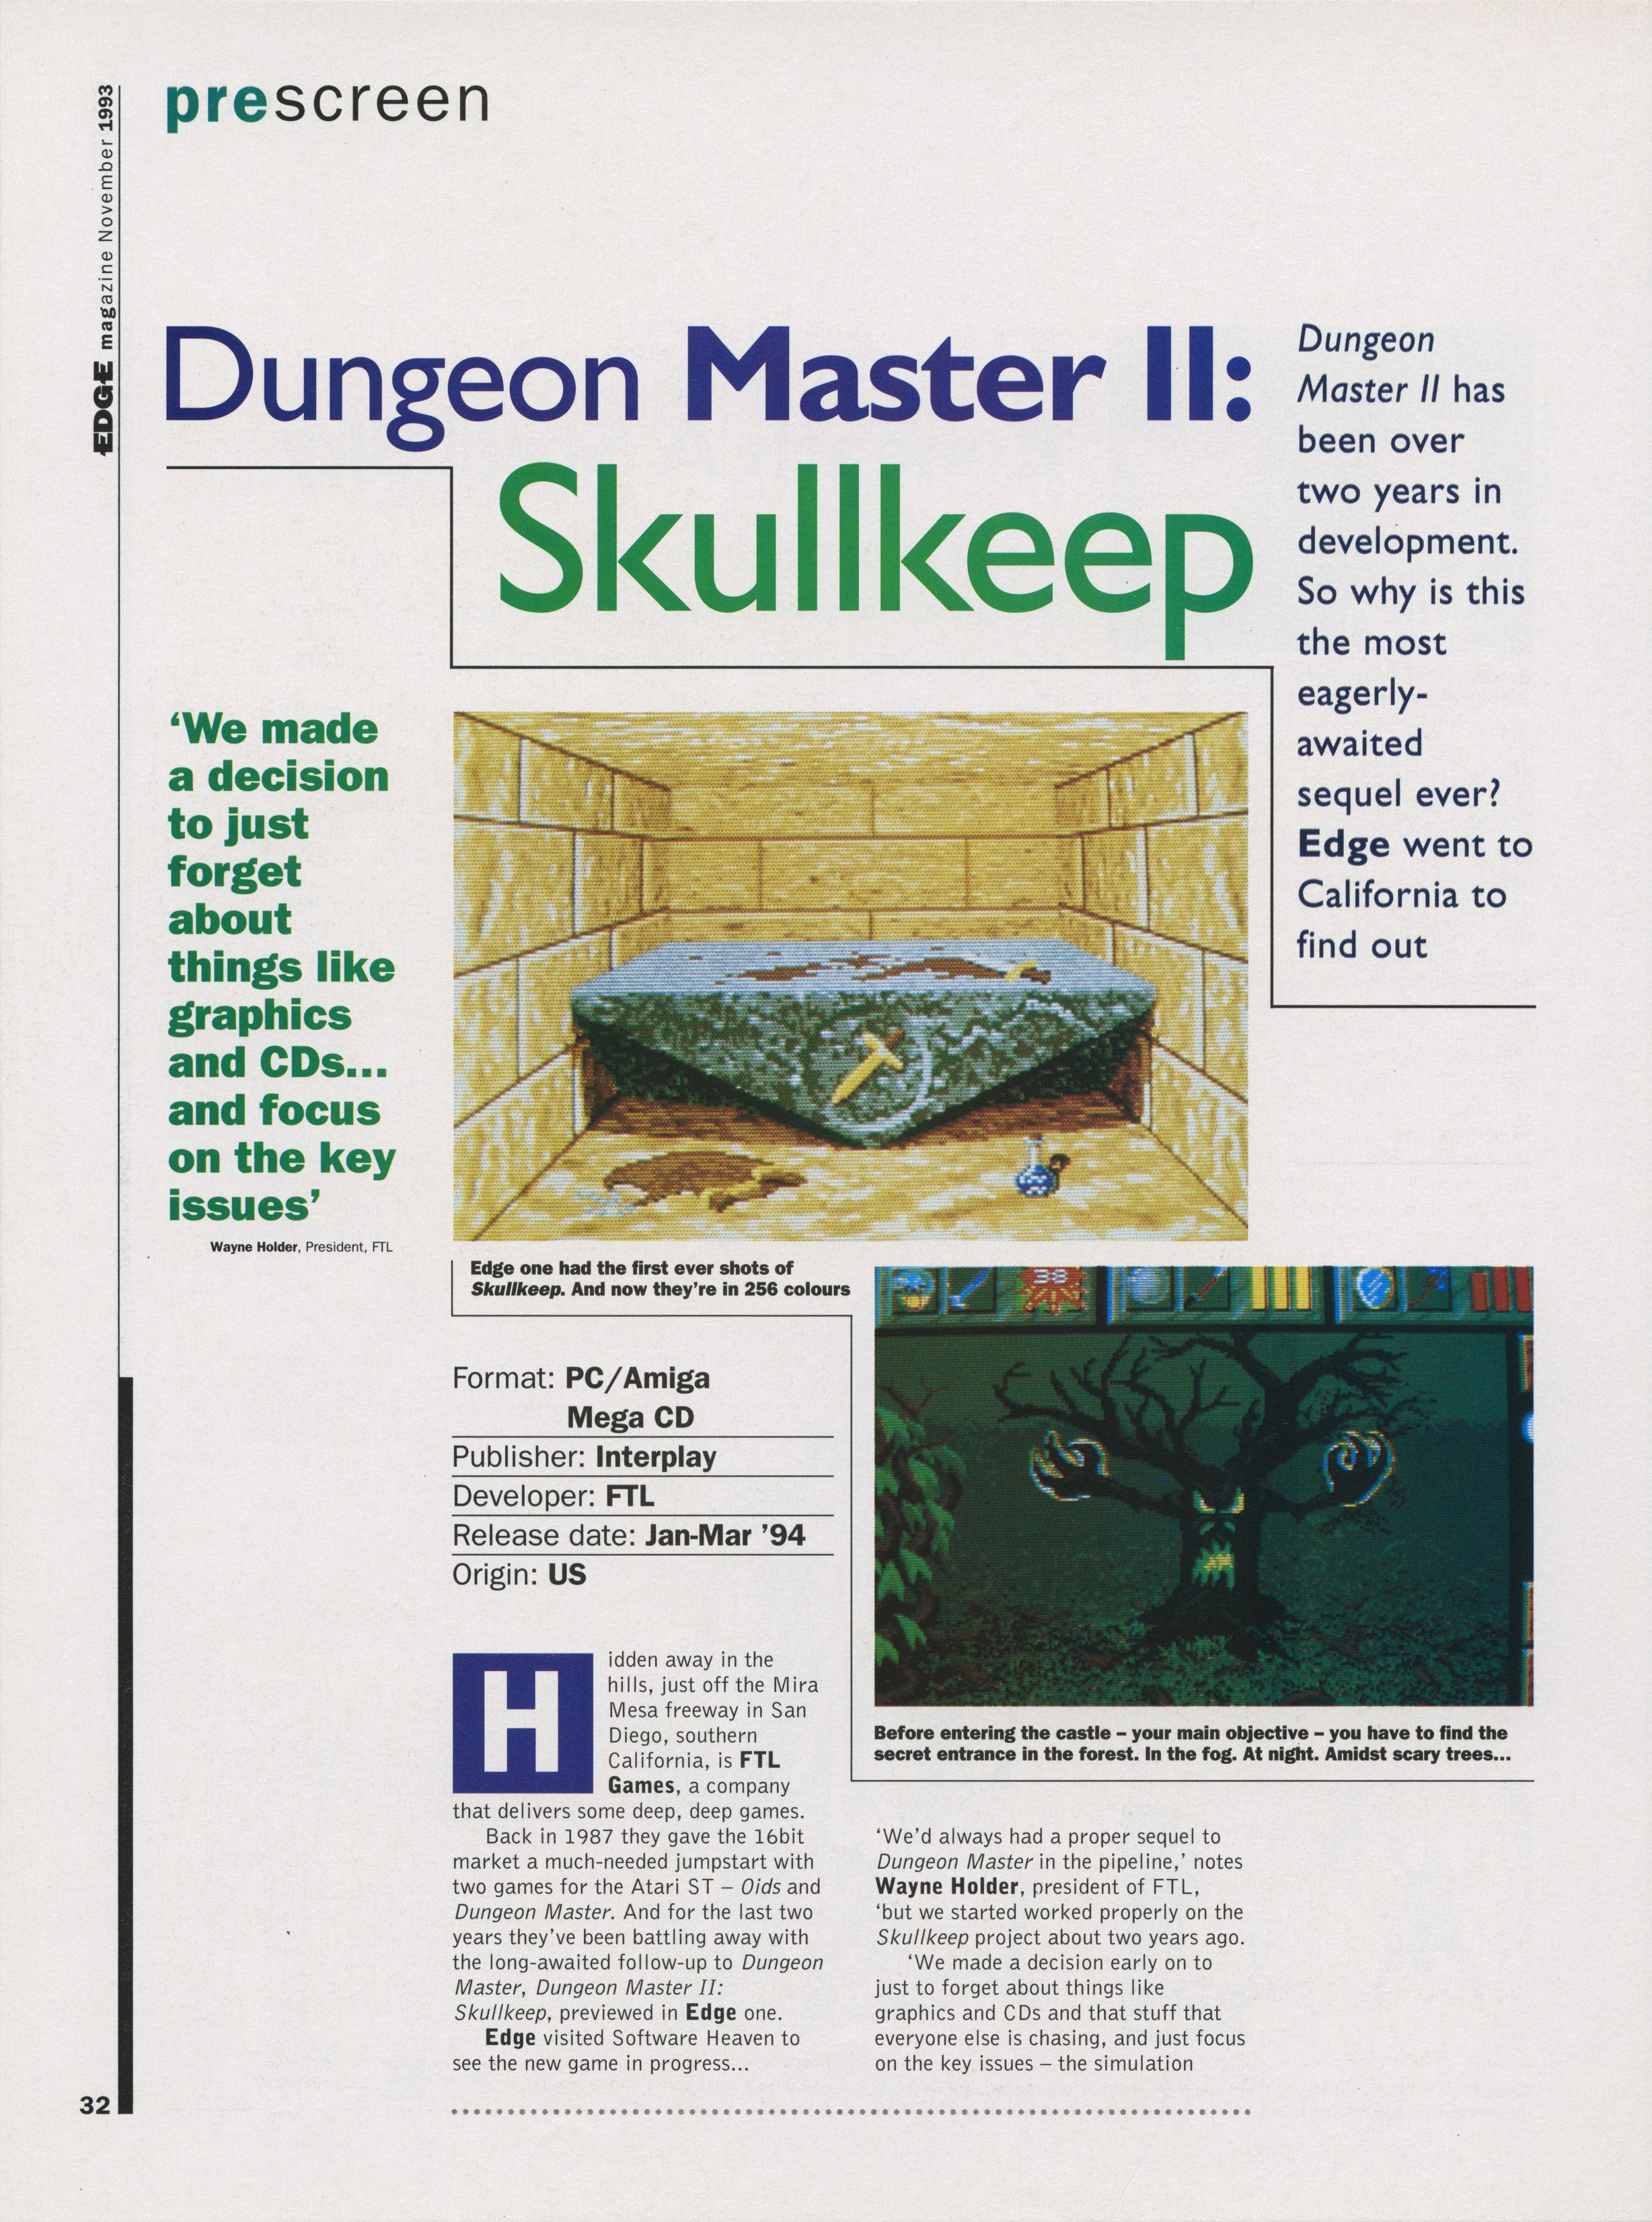 Dungeon Master II for PC Preview published in British magazine 'Edge', Issue #2 November 1993, Page 32